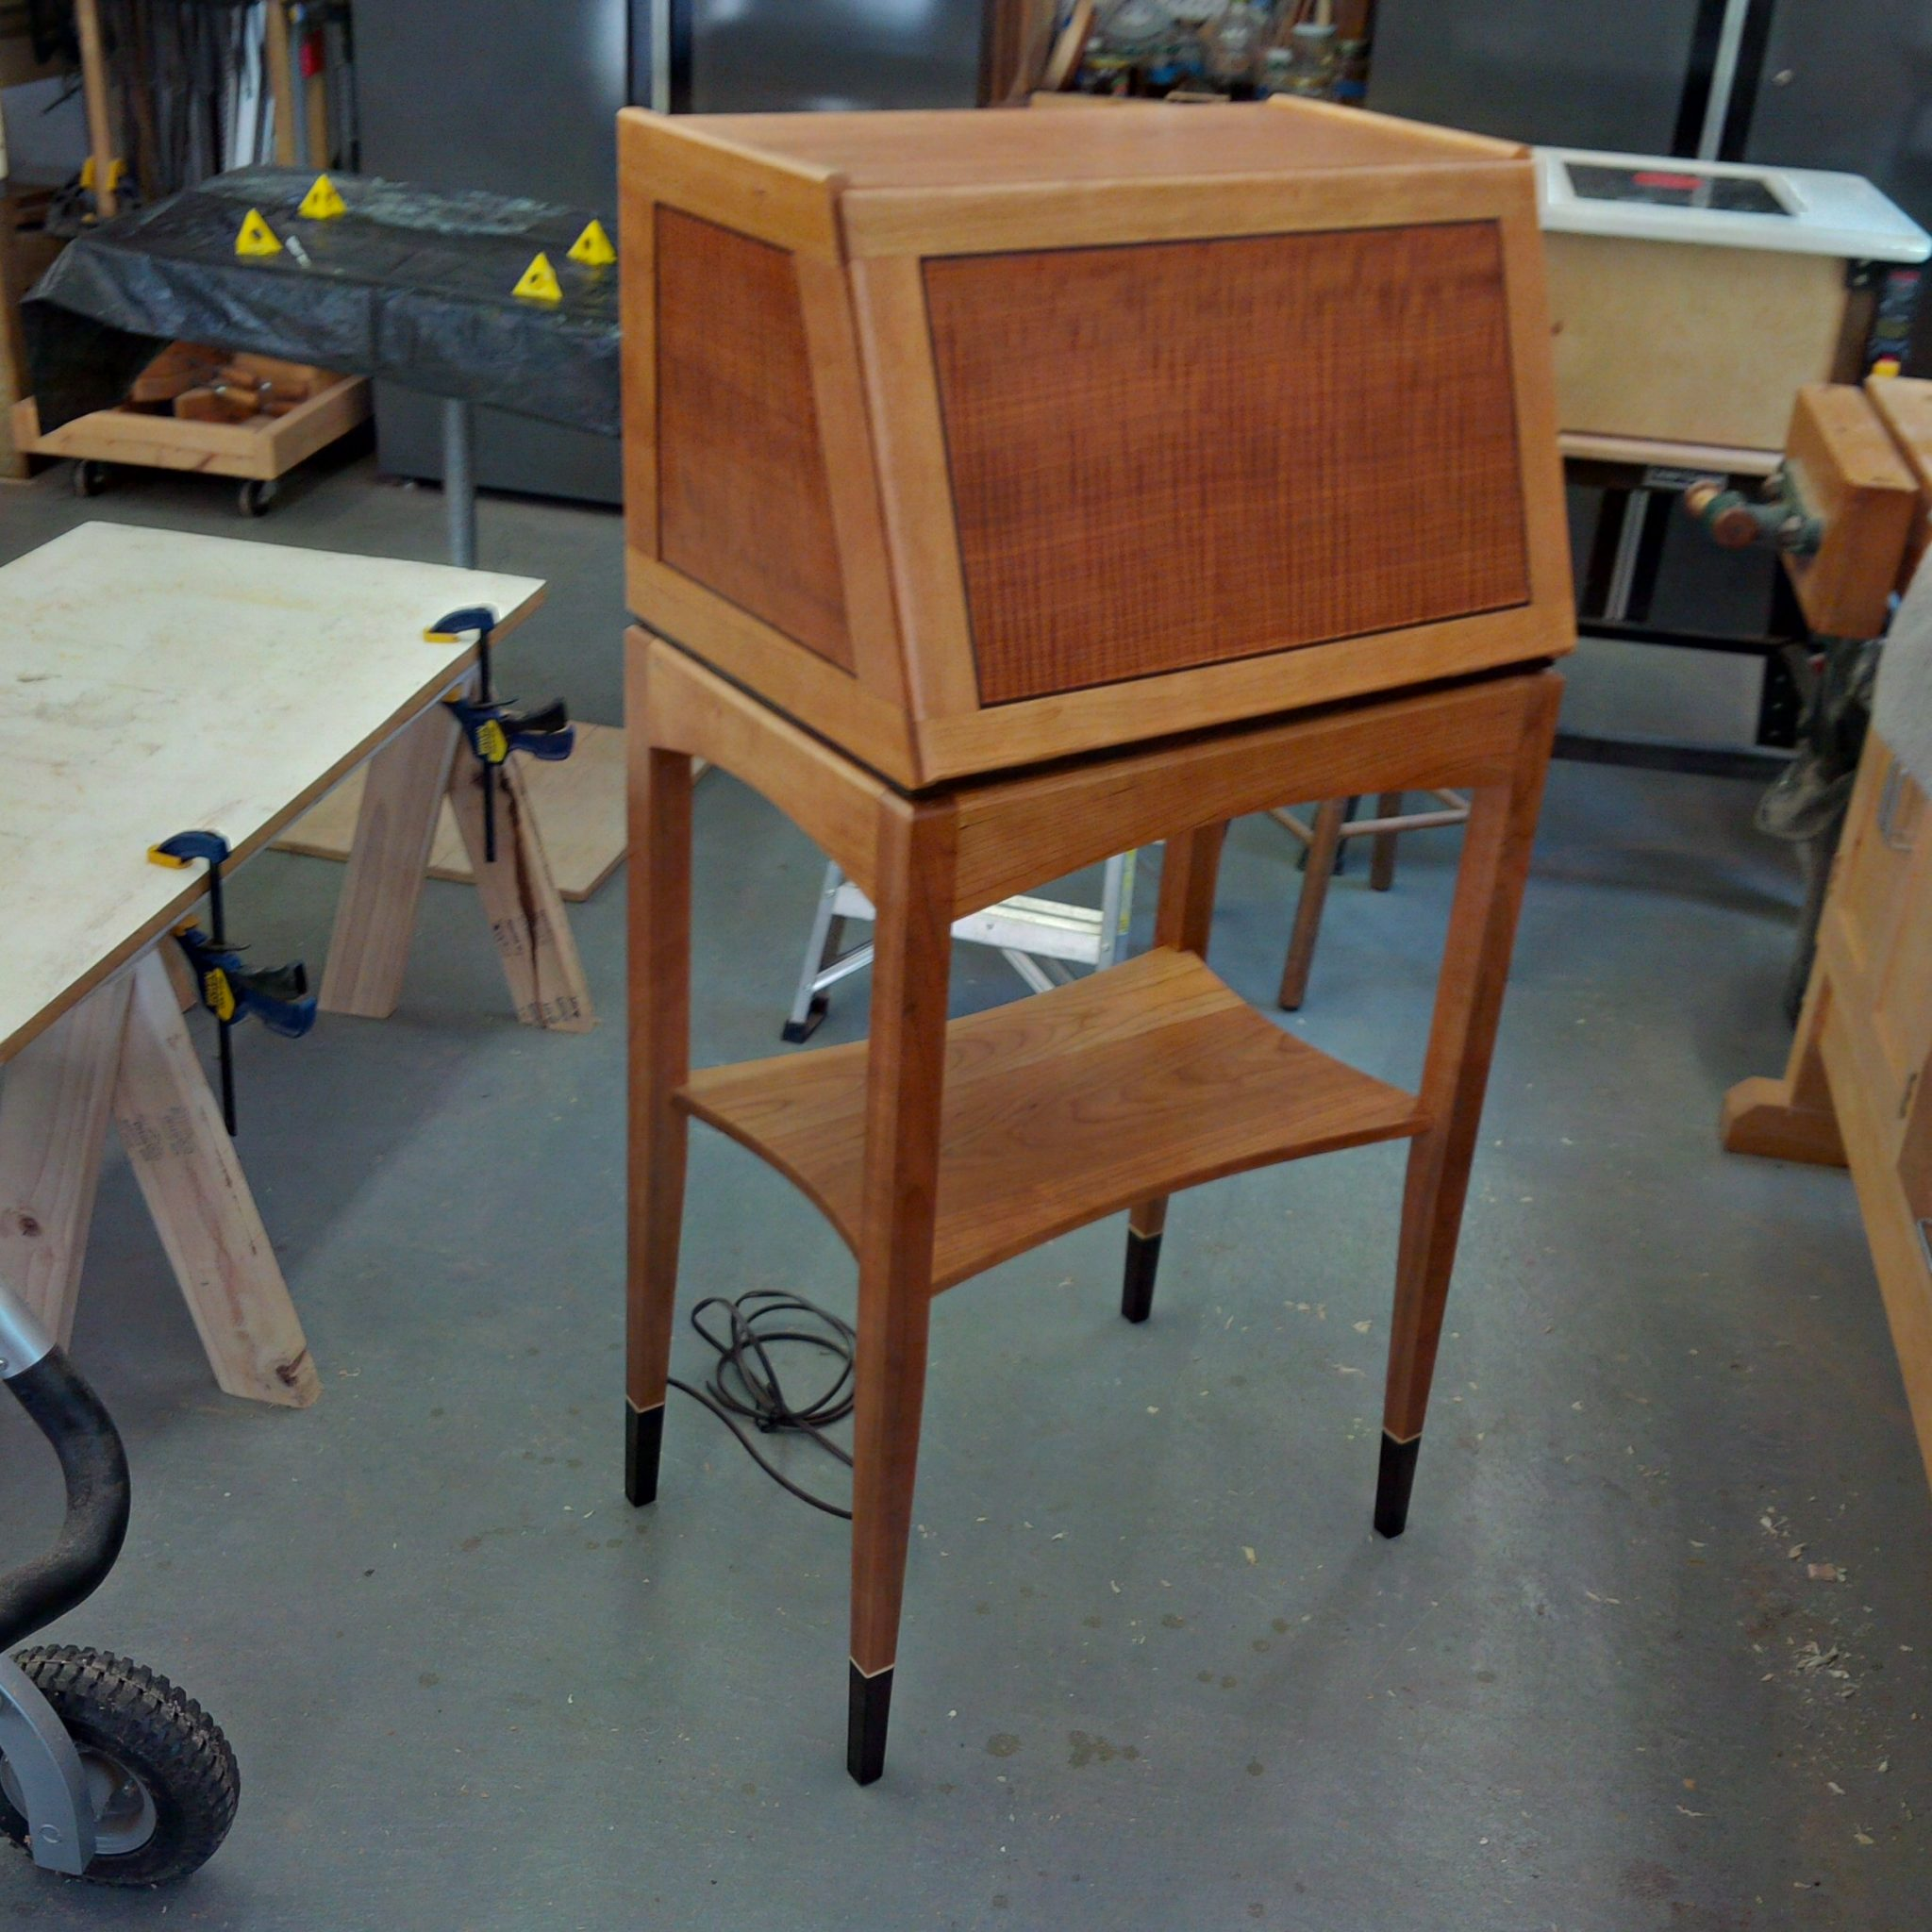 Cherry Slant Top Desk with Makore and Wenge inlayed and Veneered Front and Sides and Wenge Inlayed Feet